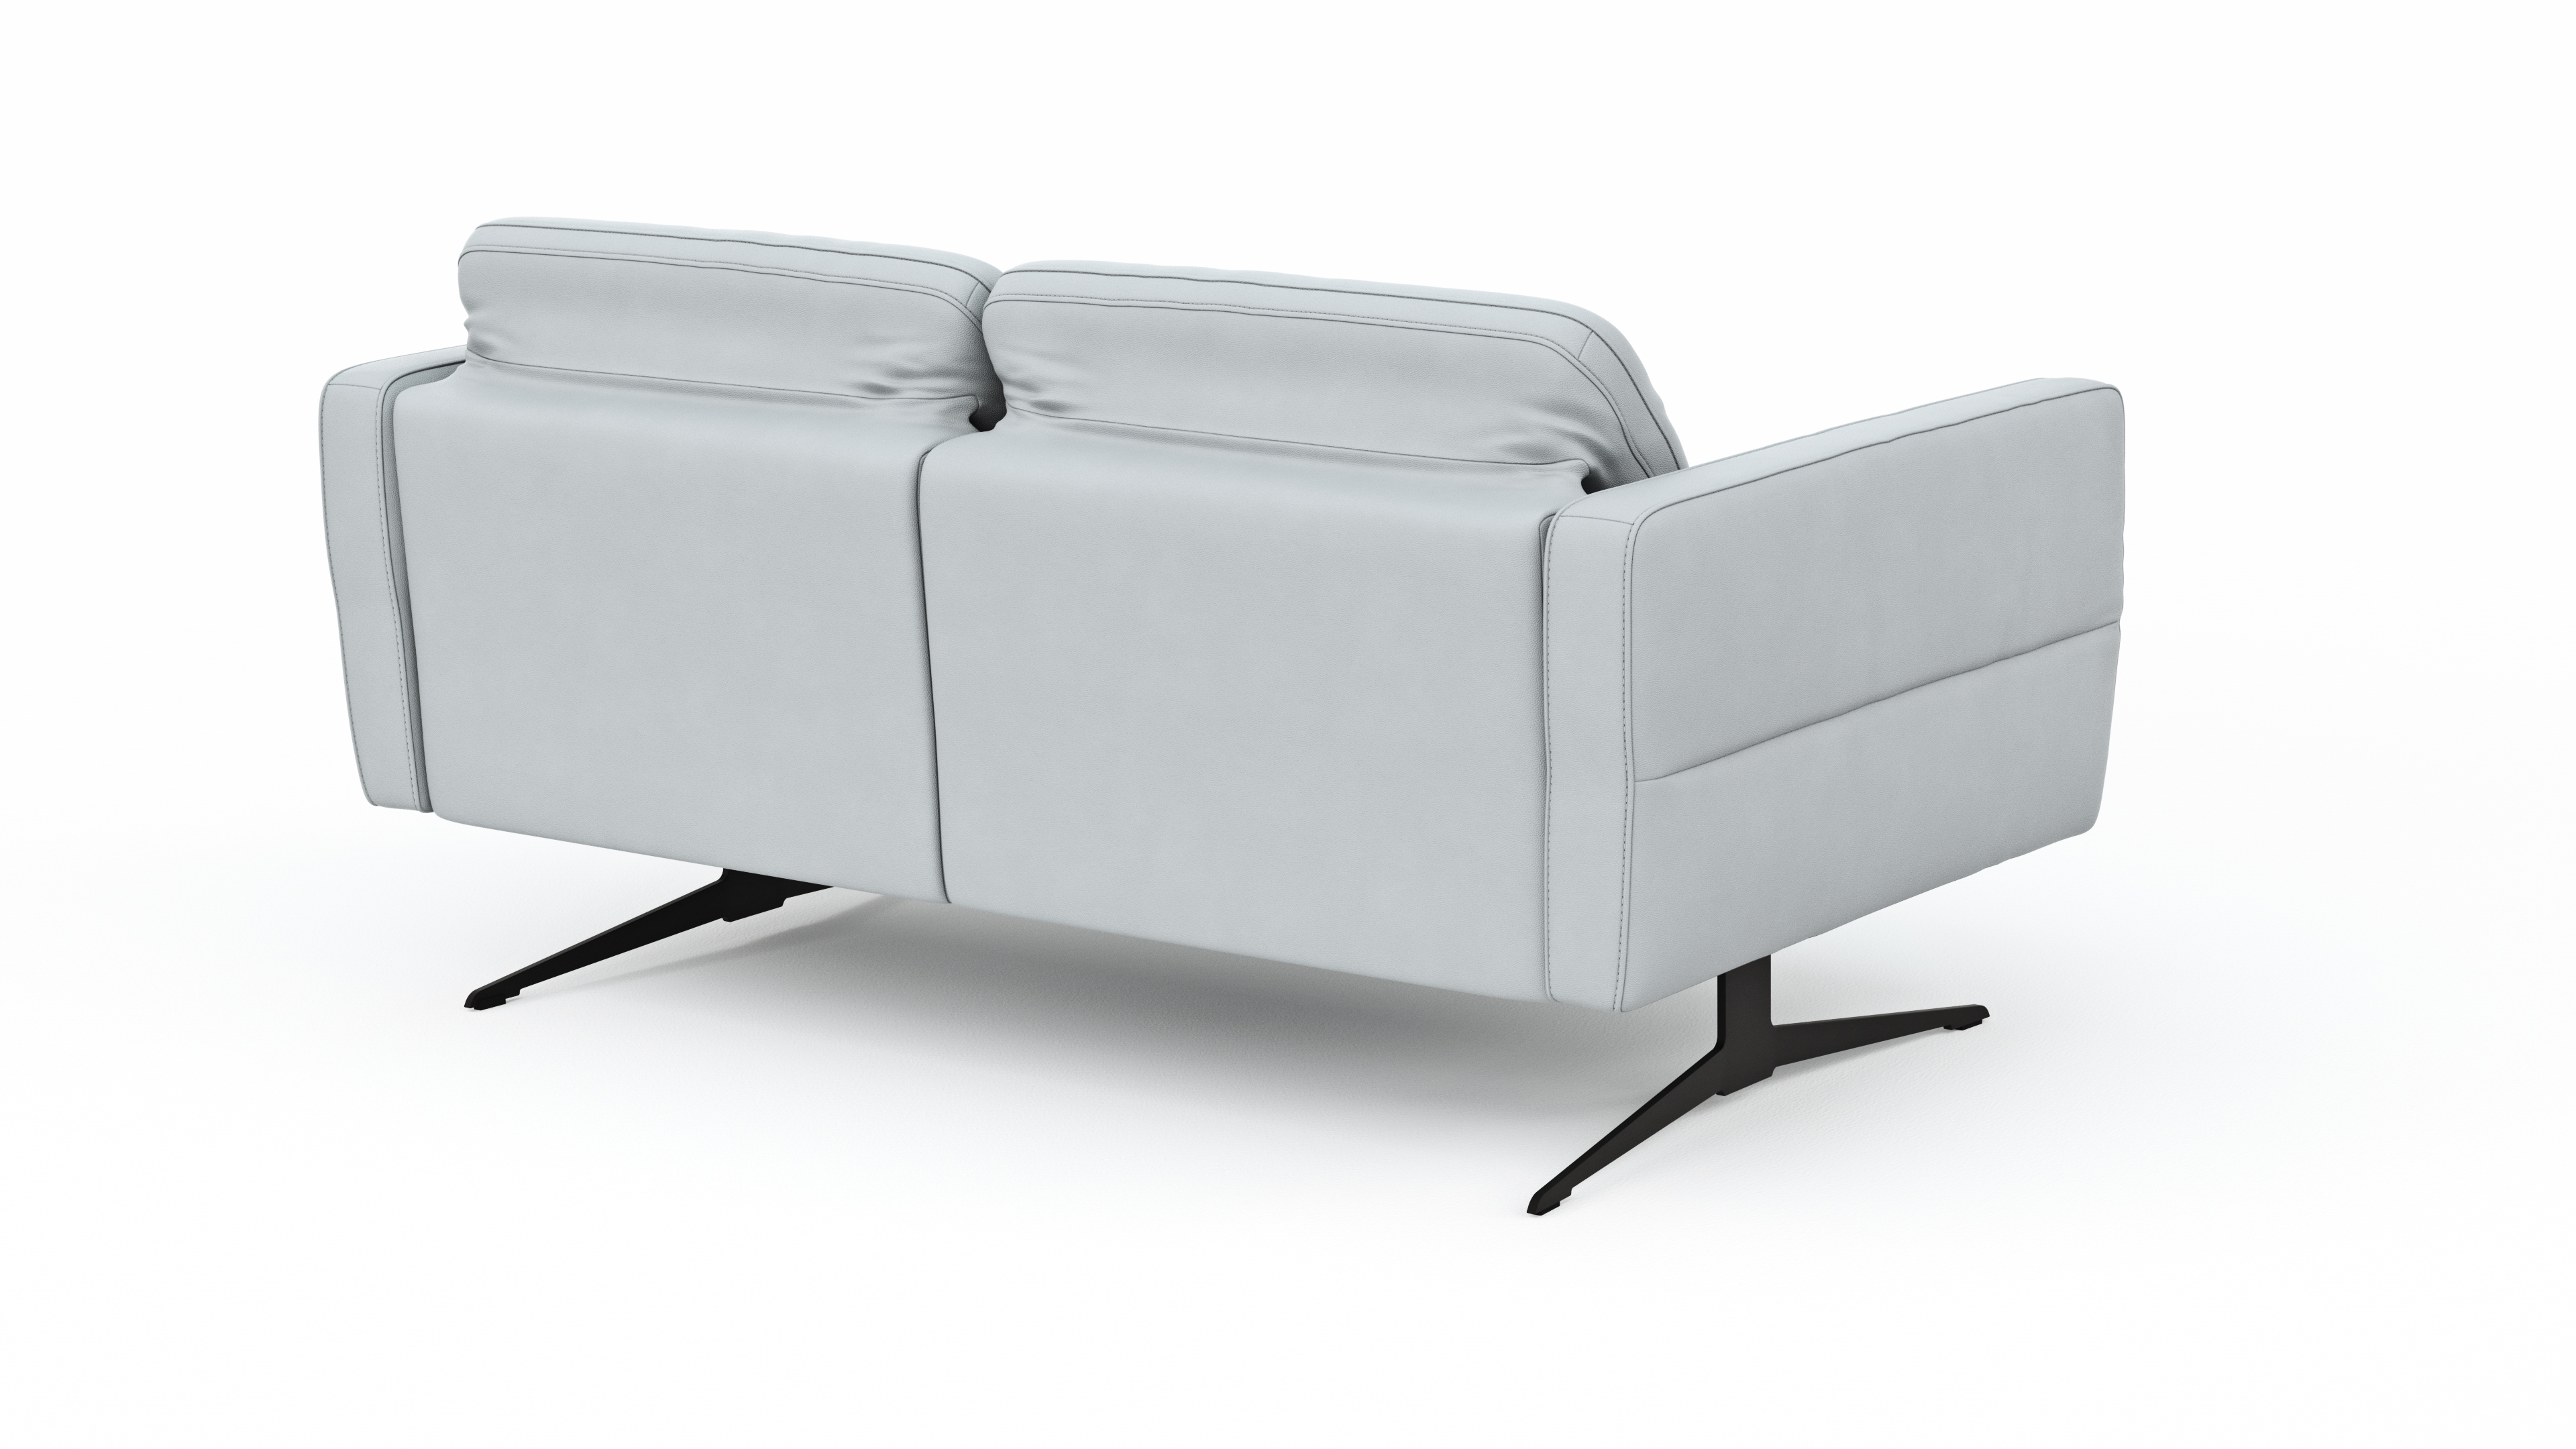 Global Select Sofa Estrela freisteller 3 104205 | Homepoet